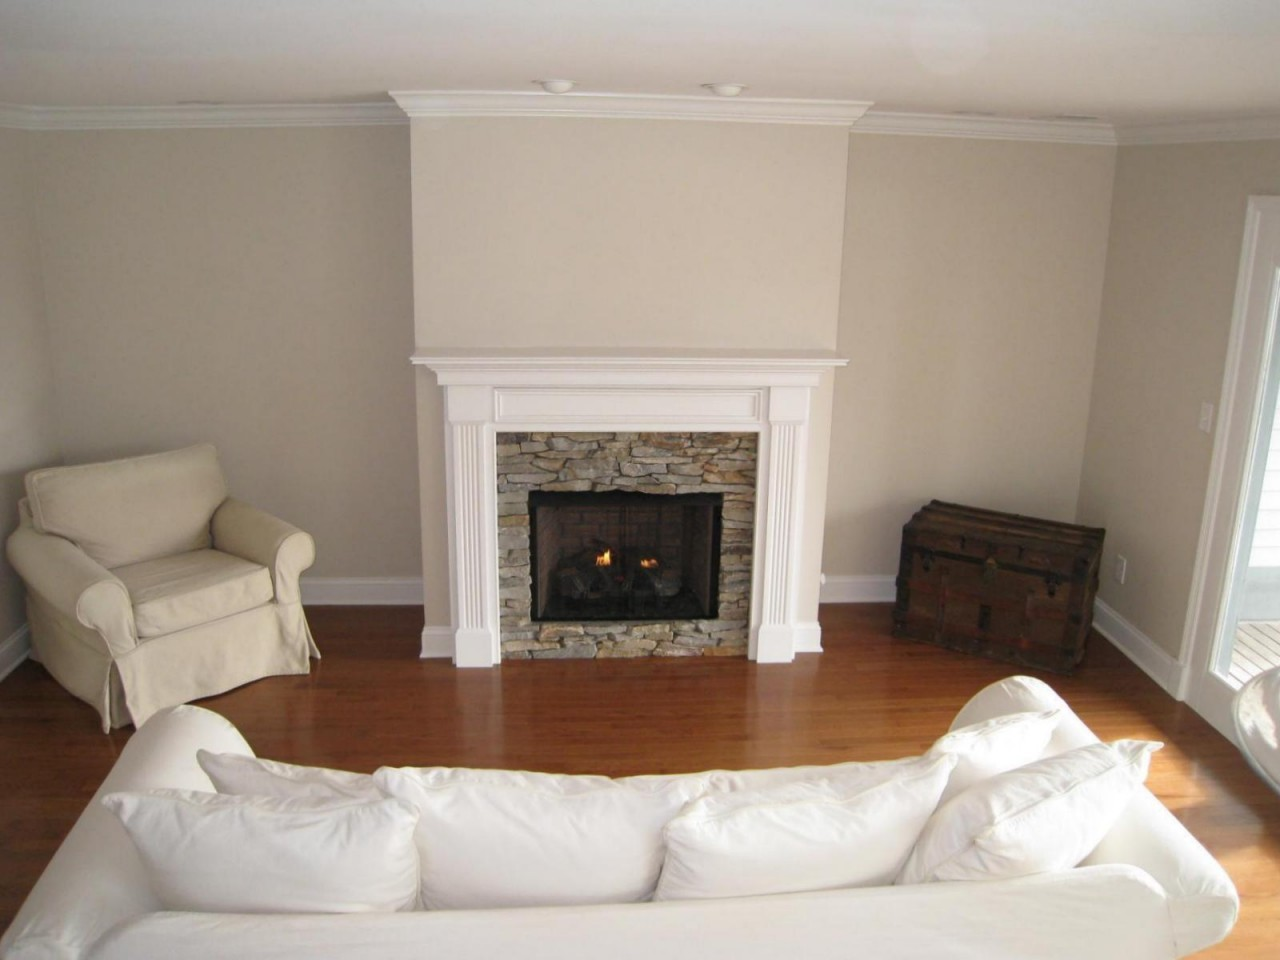 Electric Fireplace With Stone Surround